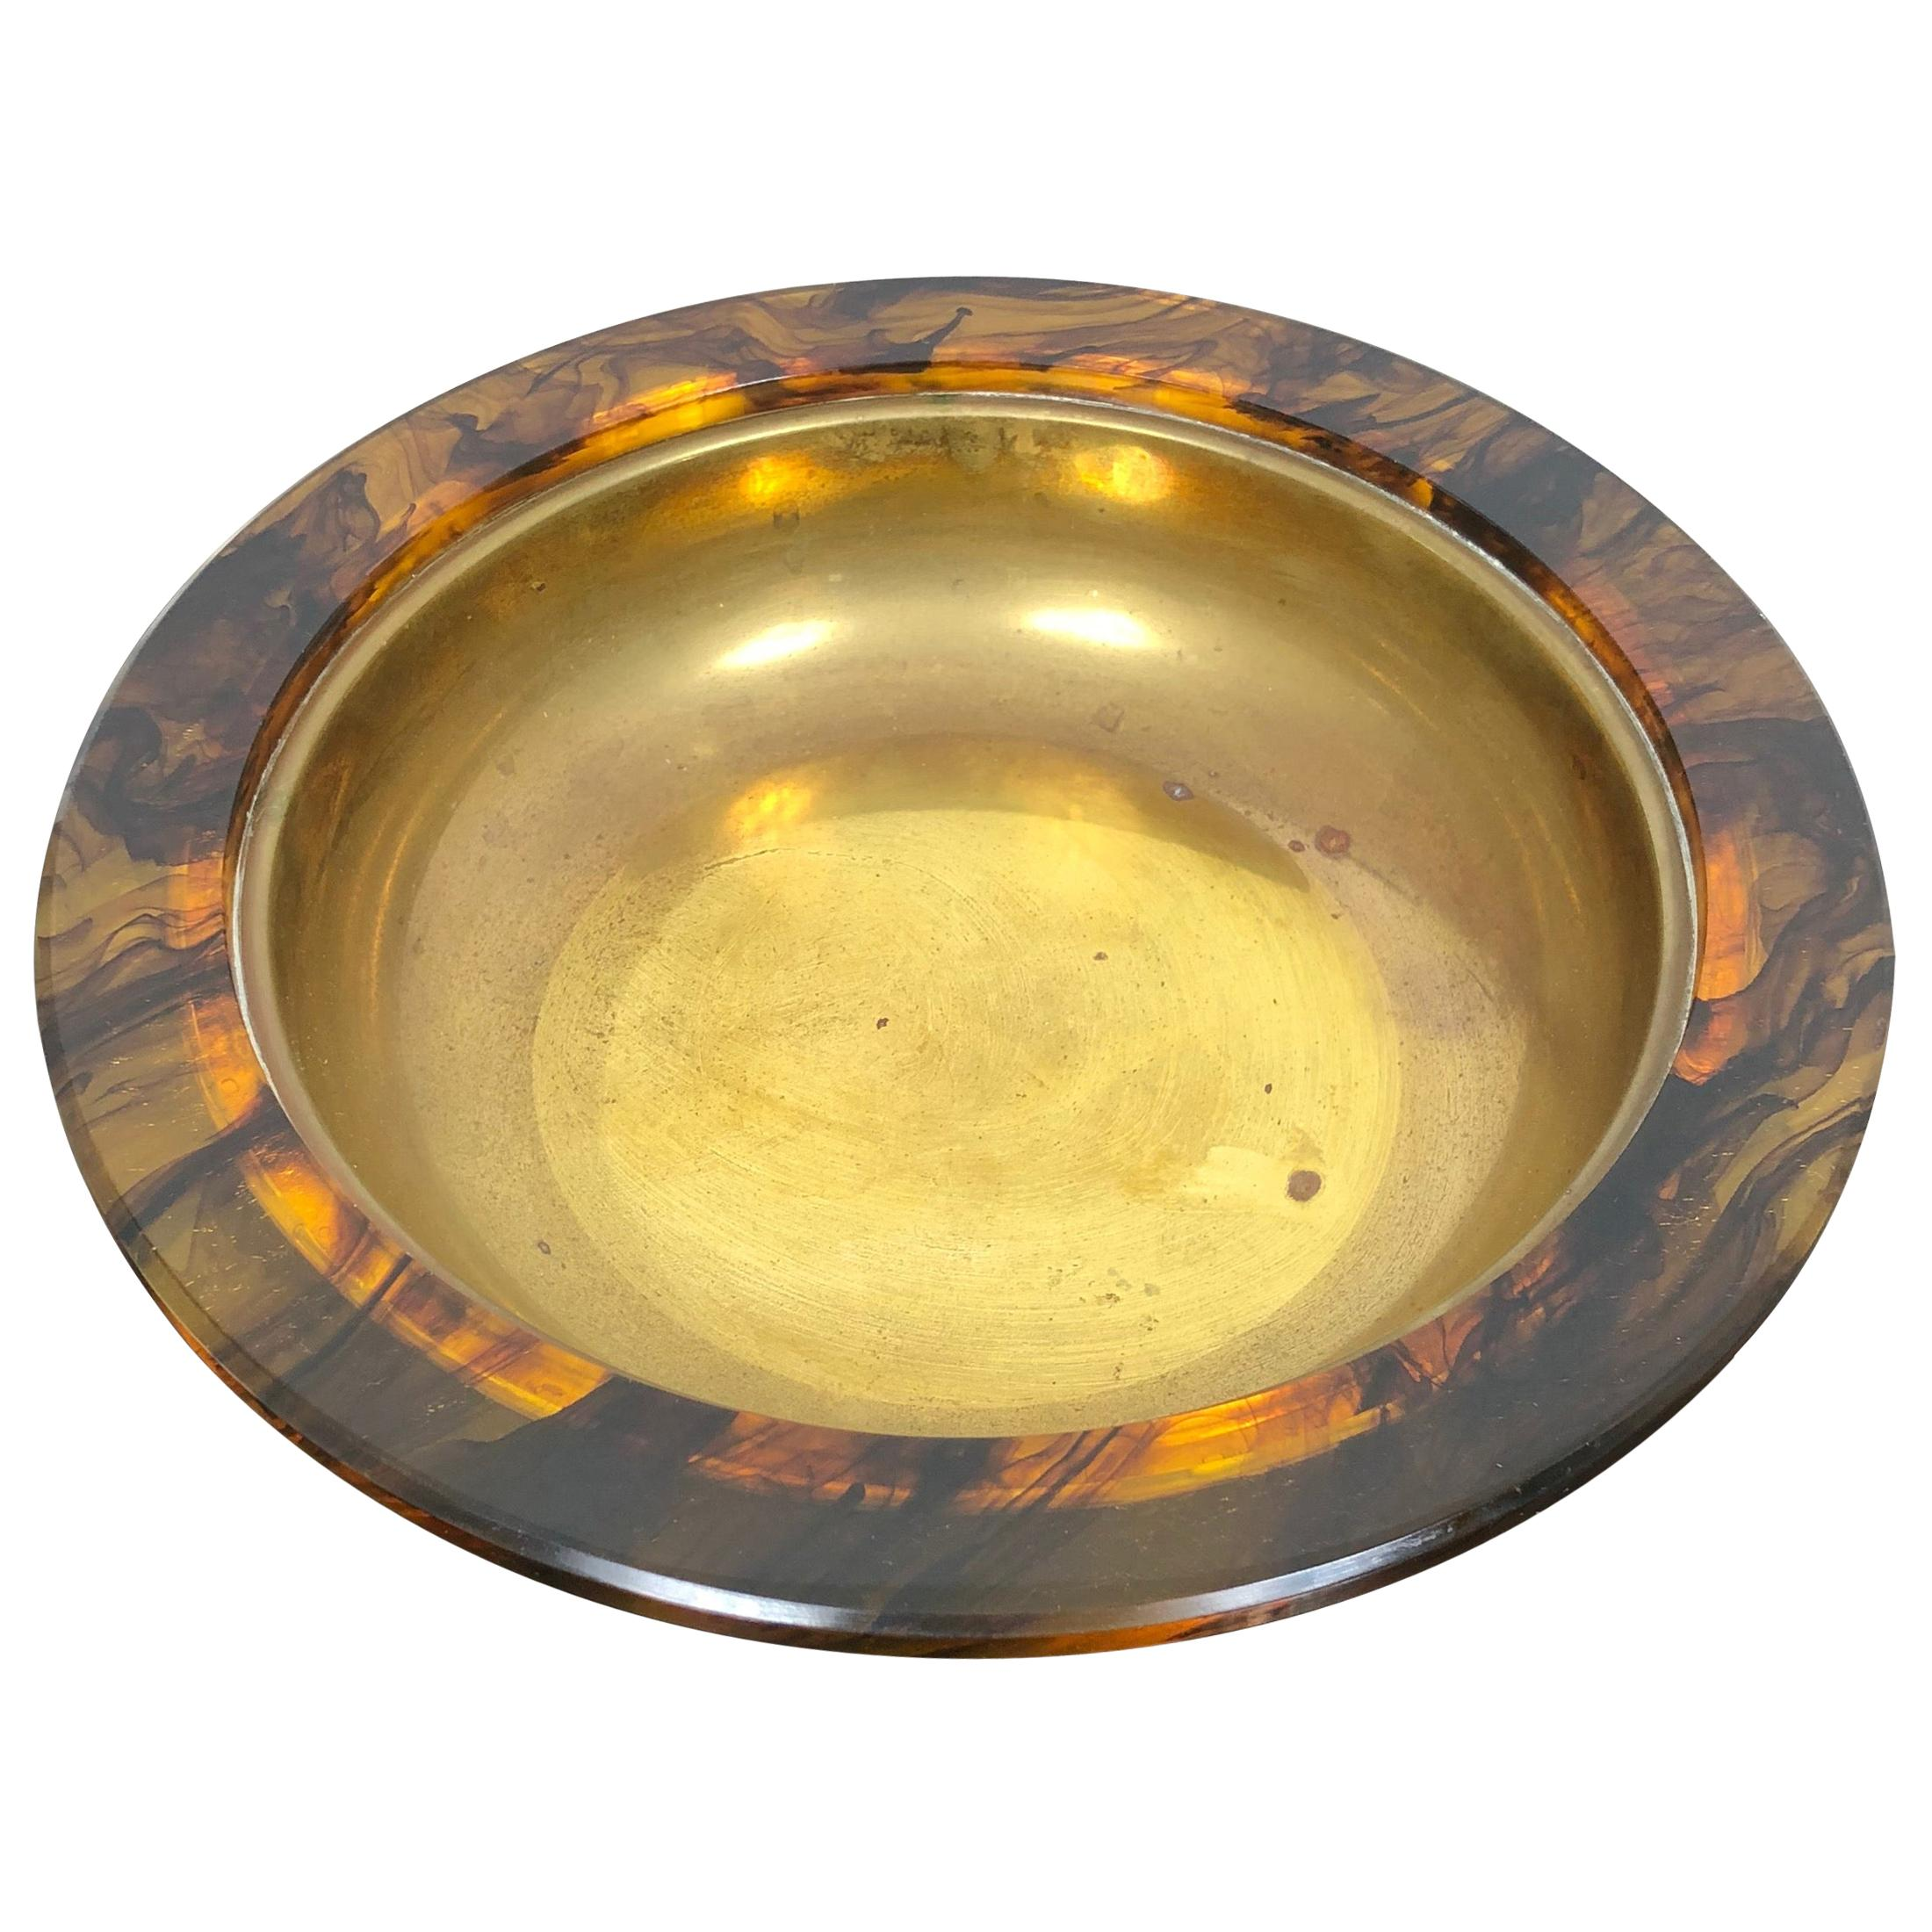 Centerpiece Plate in Tortoiseshell Lucite and Brass, 1960